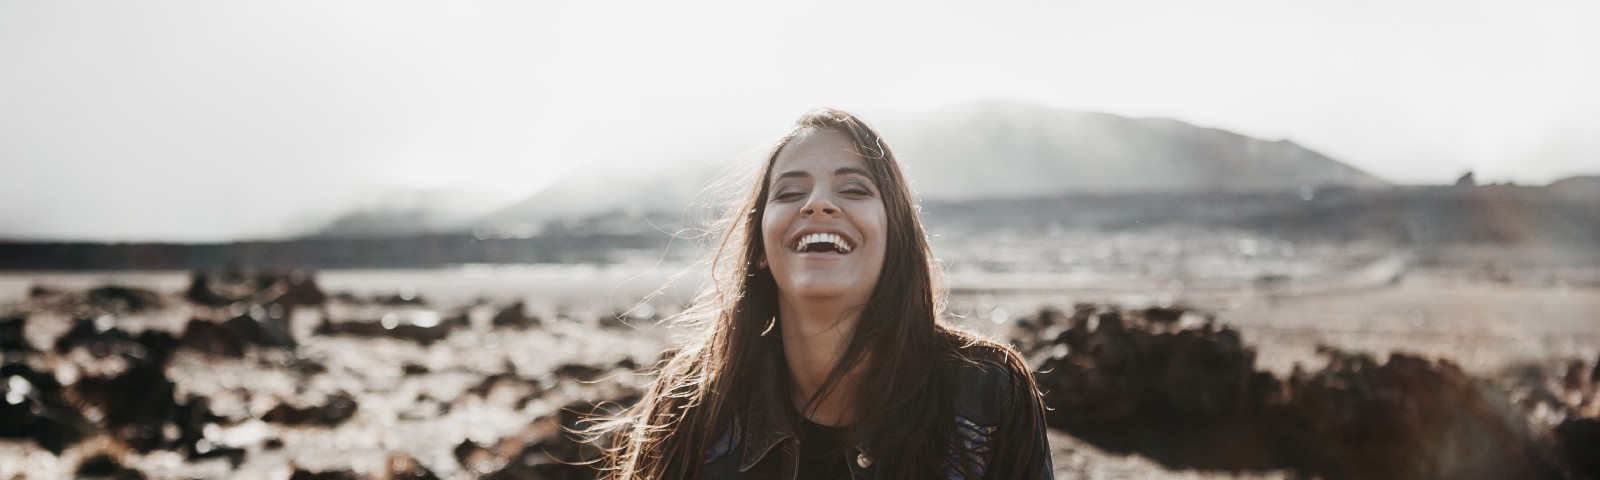 Young woman smiling in the desert.